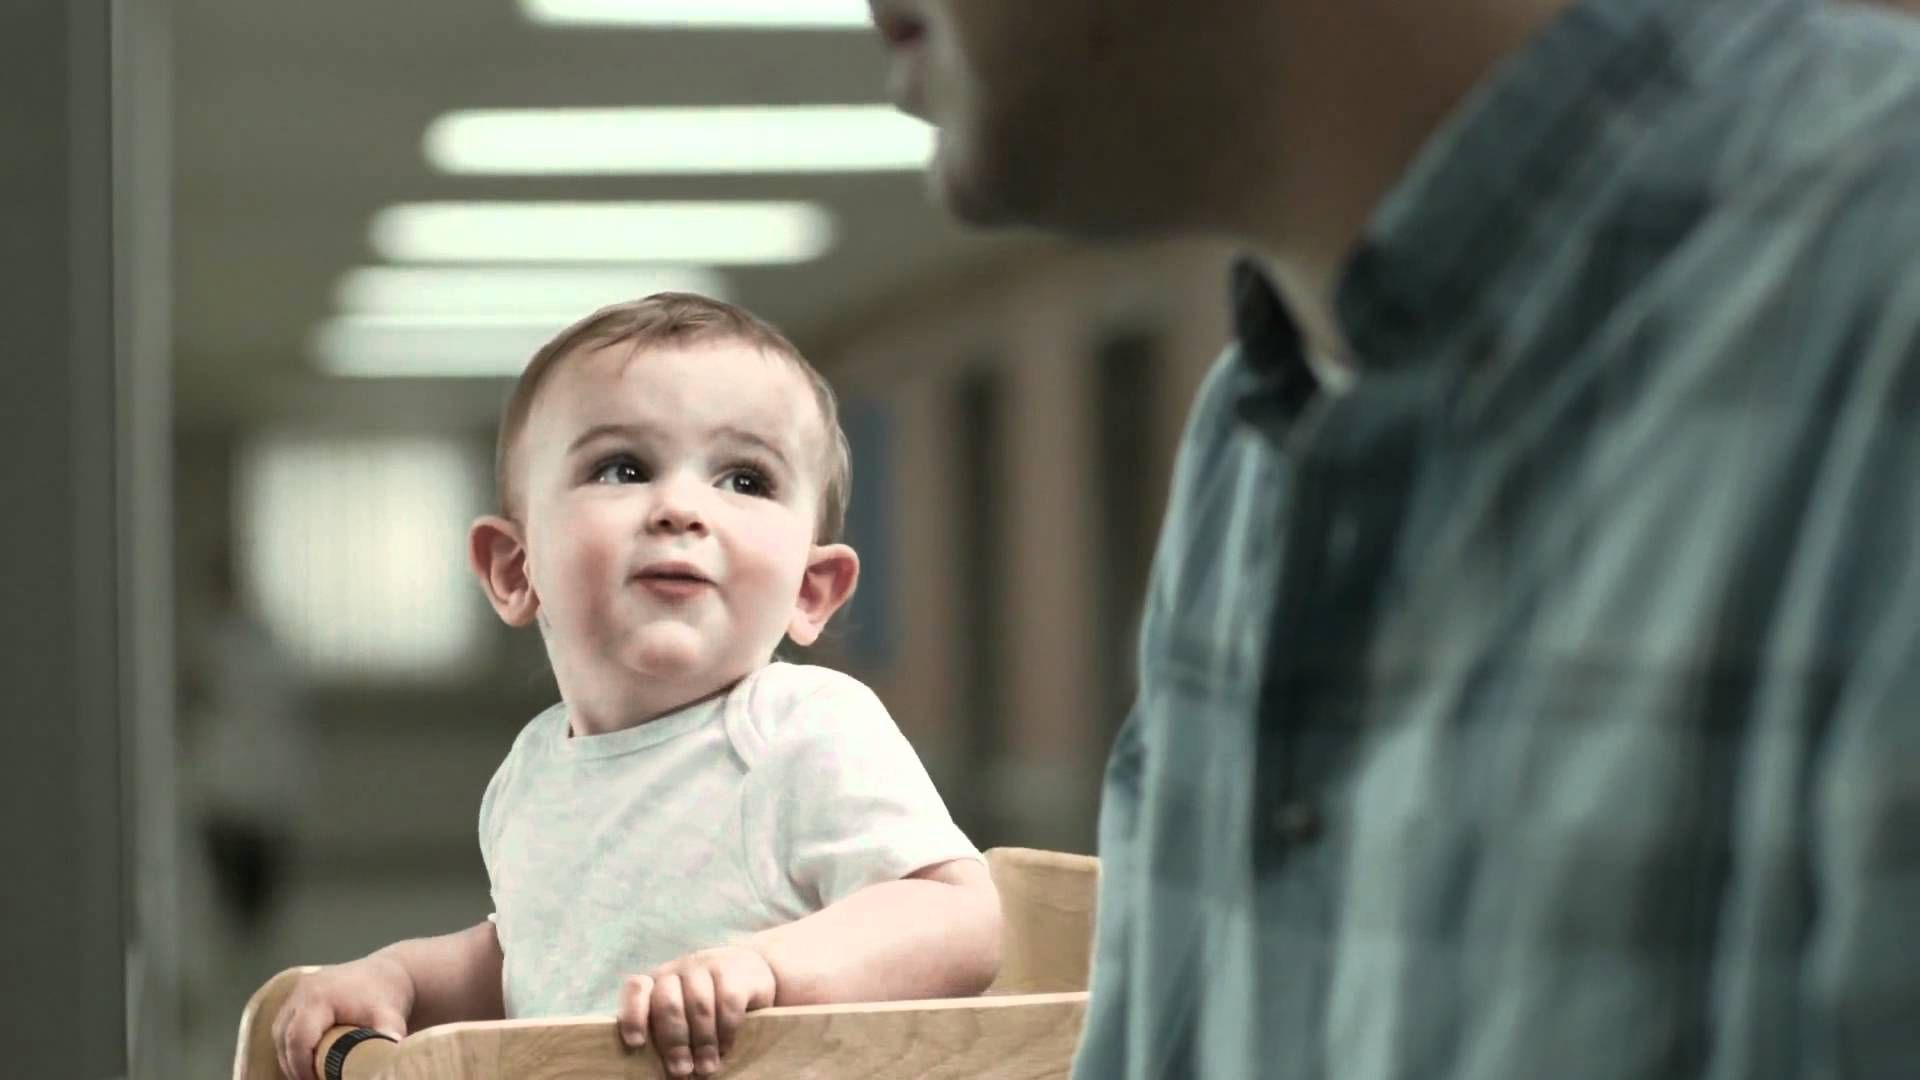 Speed dating baby commercial